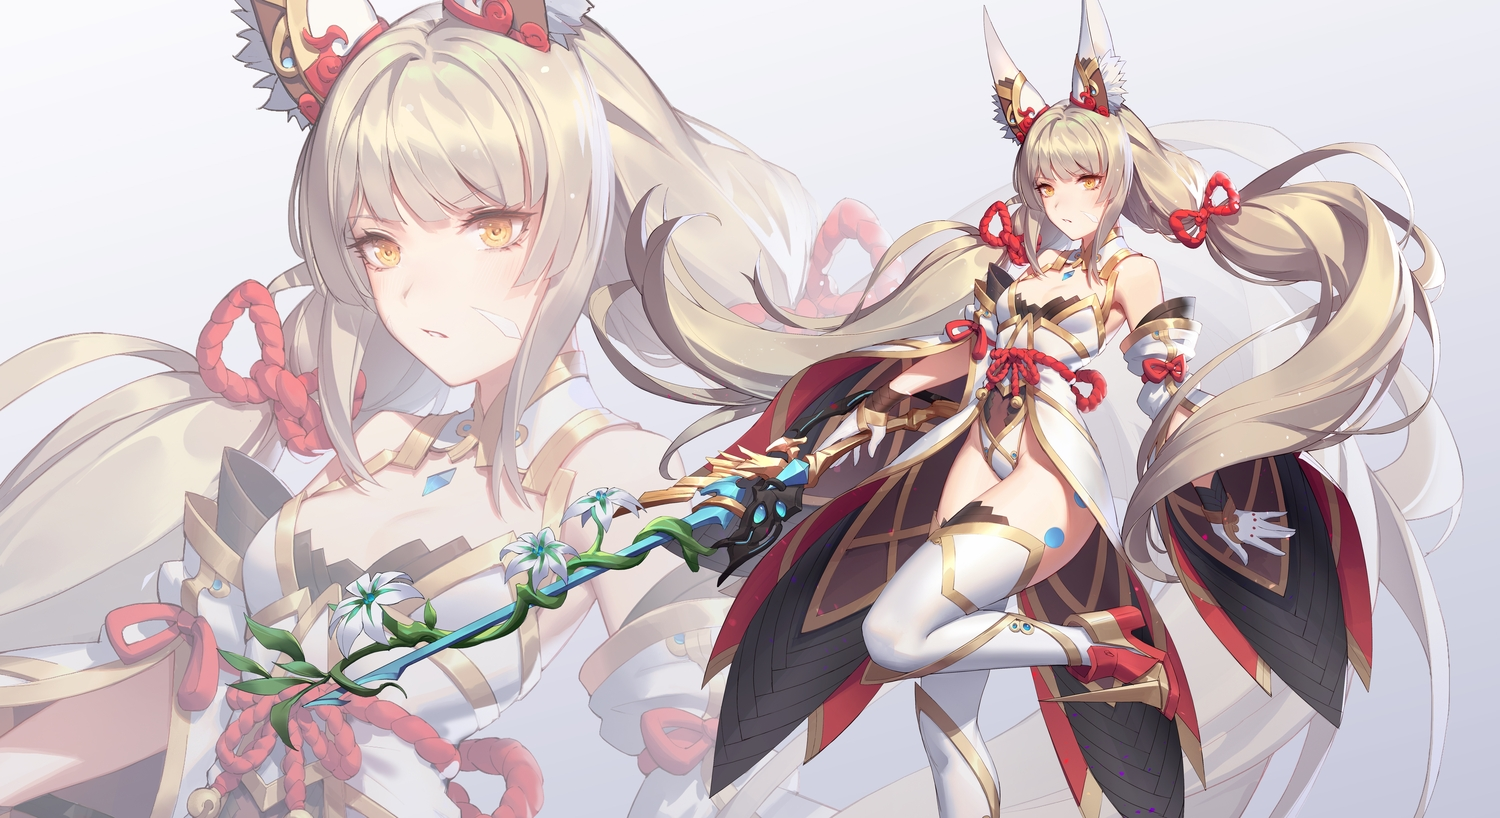 animal_ears flowers gloves gray_hair long_hair niyah_(xenoblade) q18607 sword thighhighs twintails weapon xenoblade yellow_eyes zoom_layer